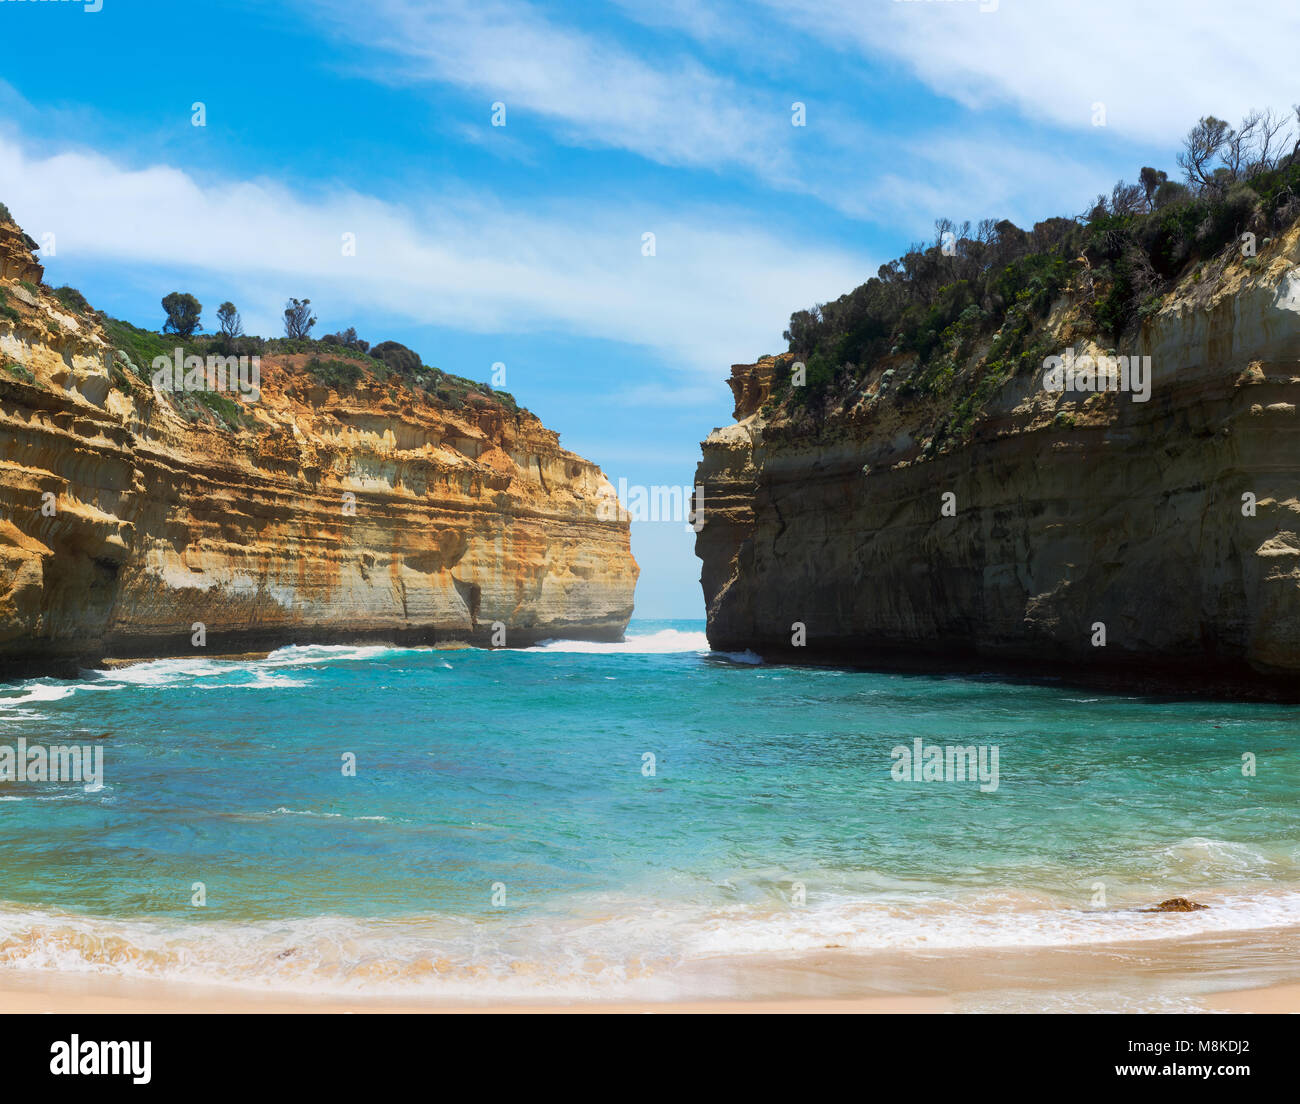 A photo of Loch ard Gorge - one of the famous rocks in Victoria, Australia. - Stock Image